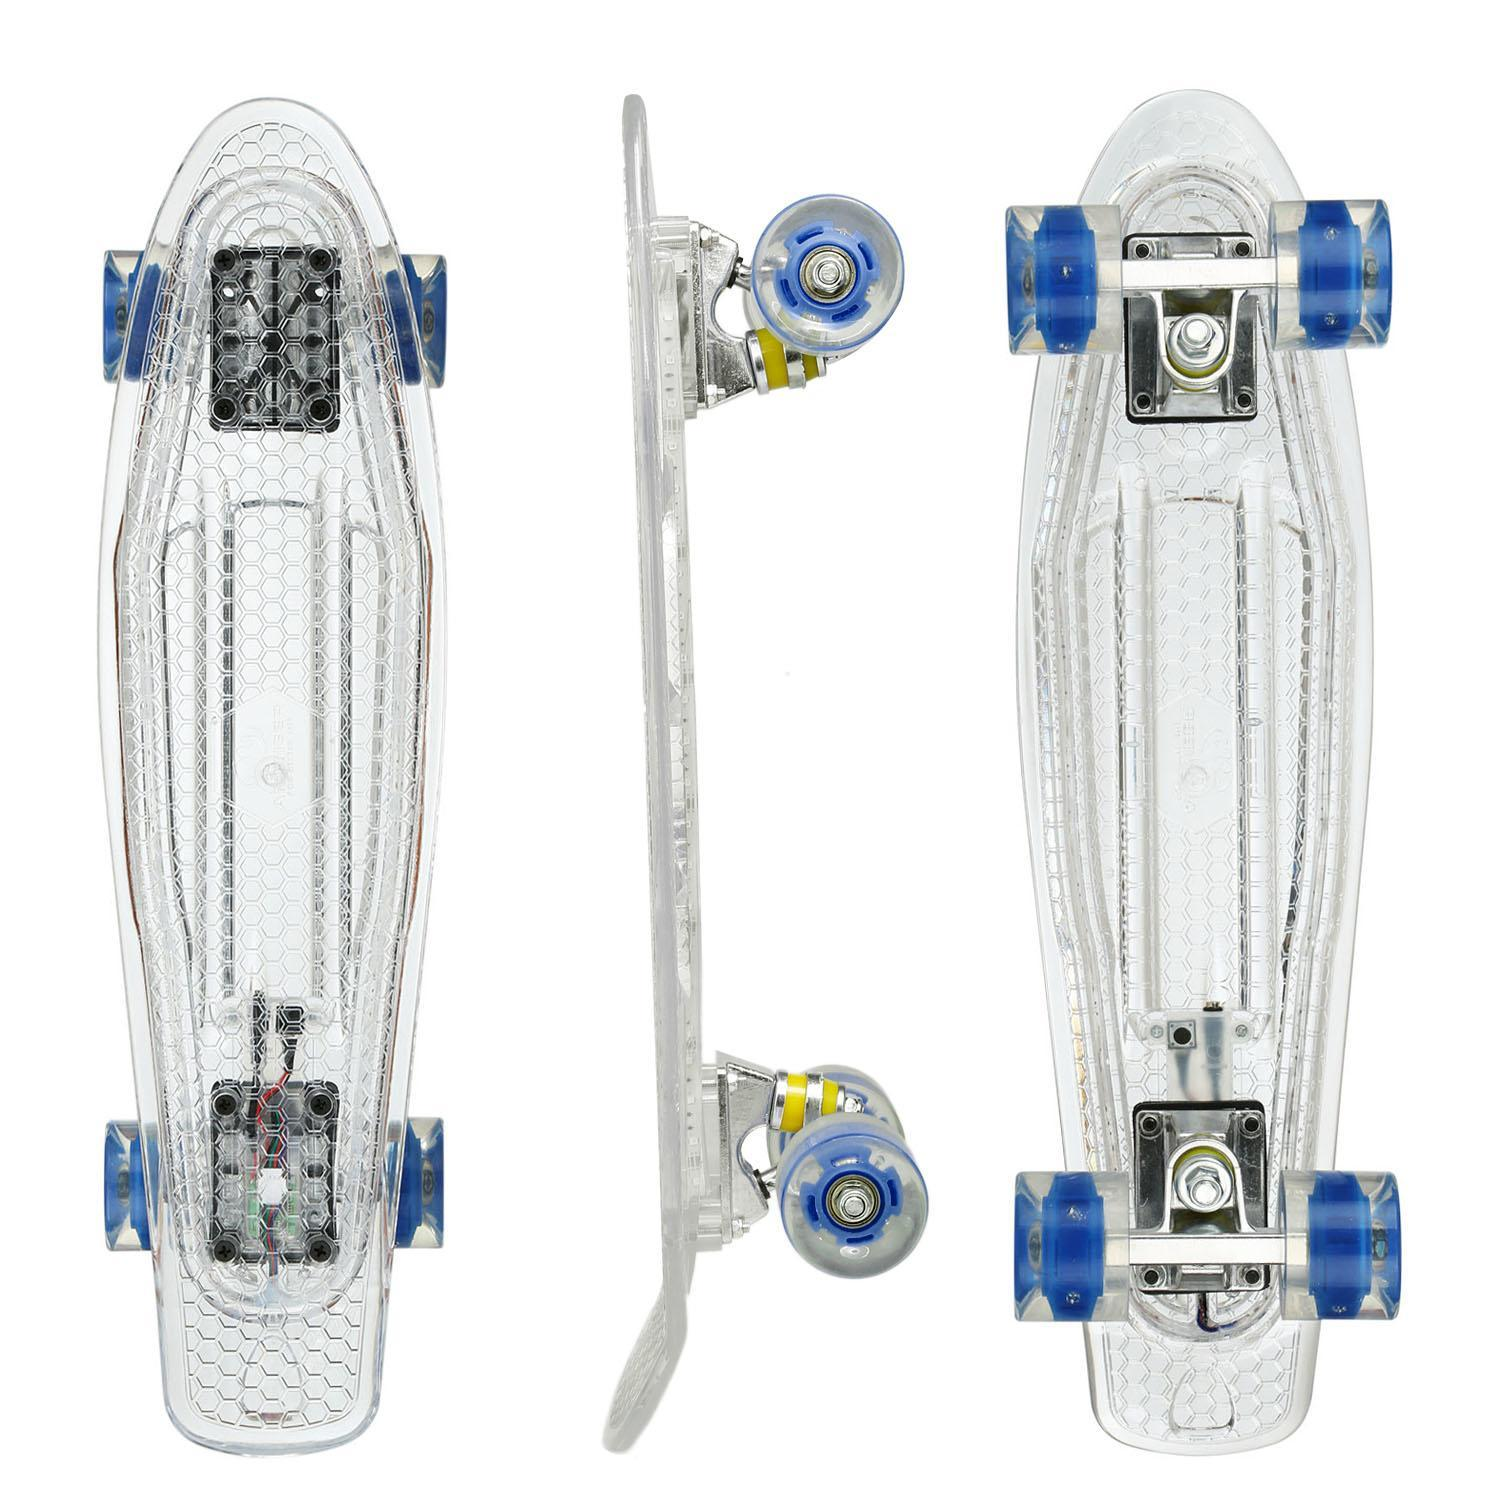 22 Cruiser Crystal Clear Board LED Light Up Wheels Outdoor Complete Deck Skateboard 3